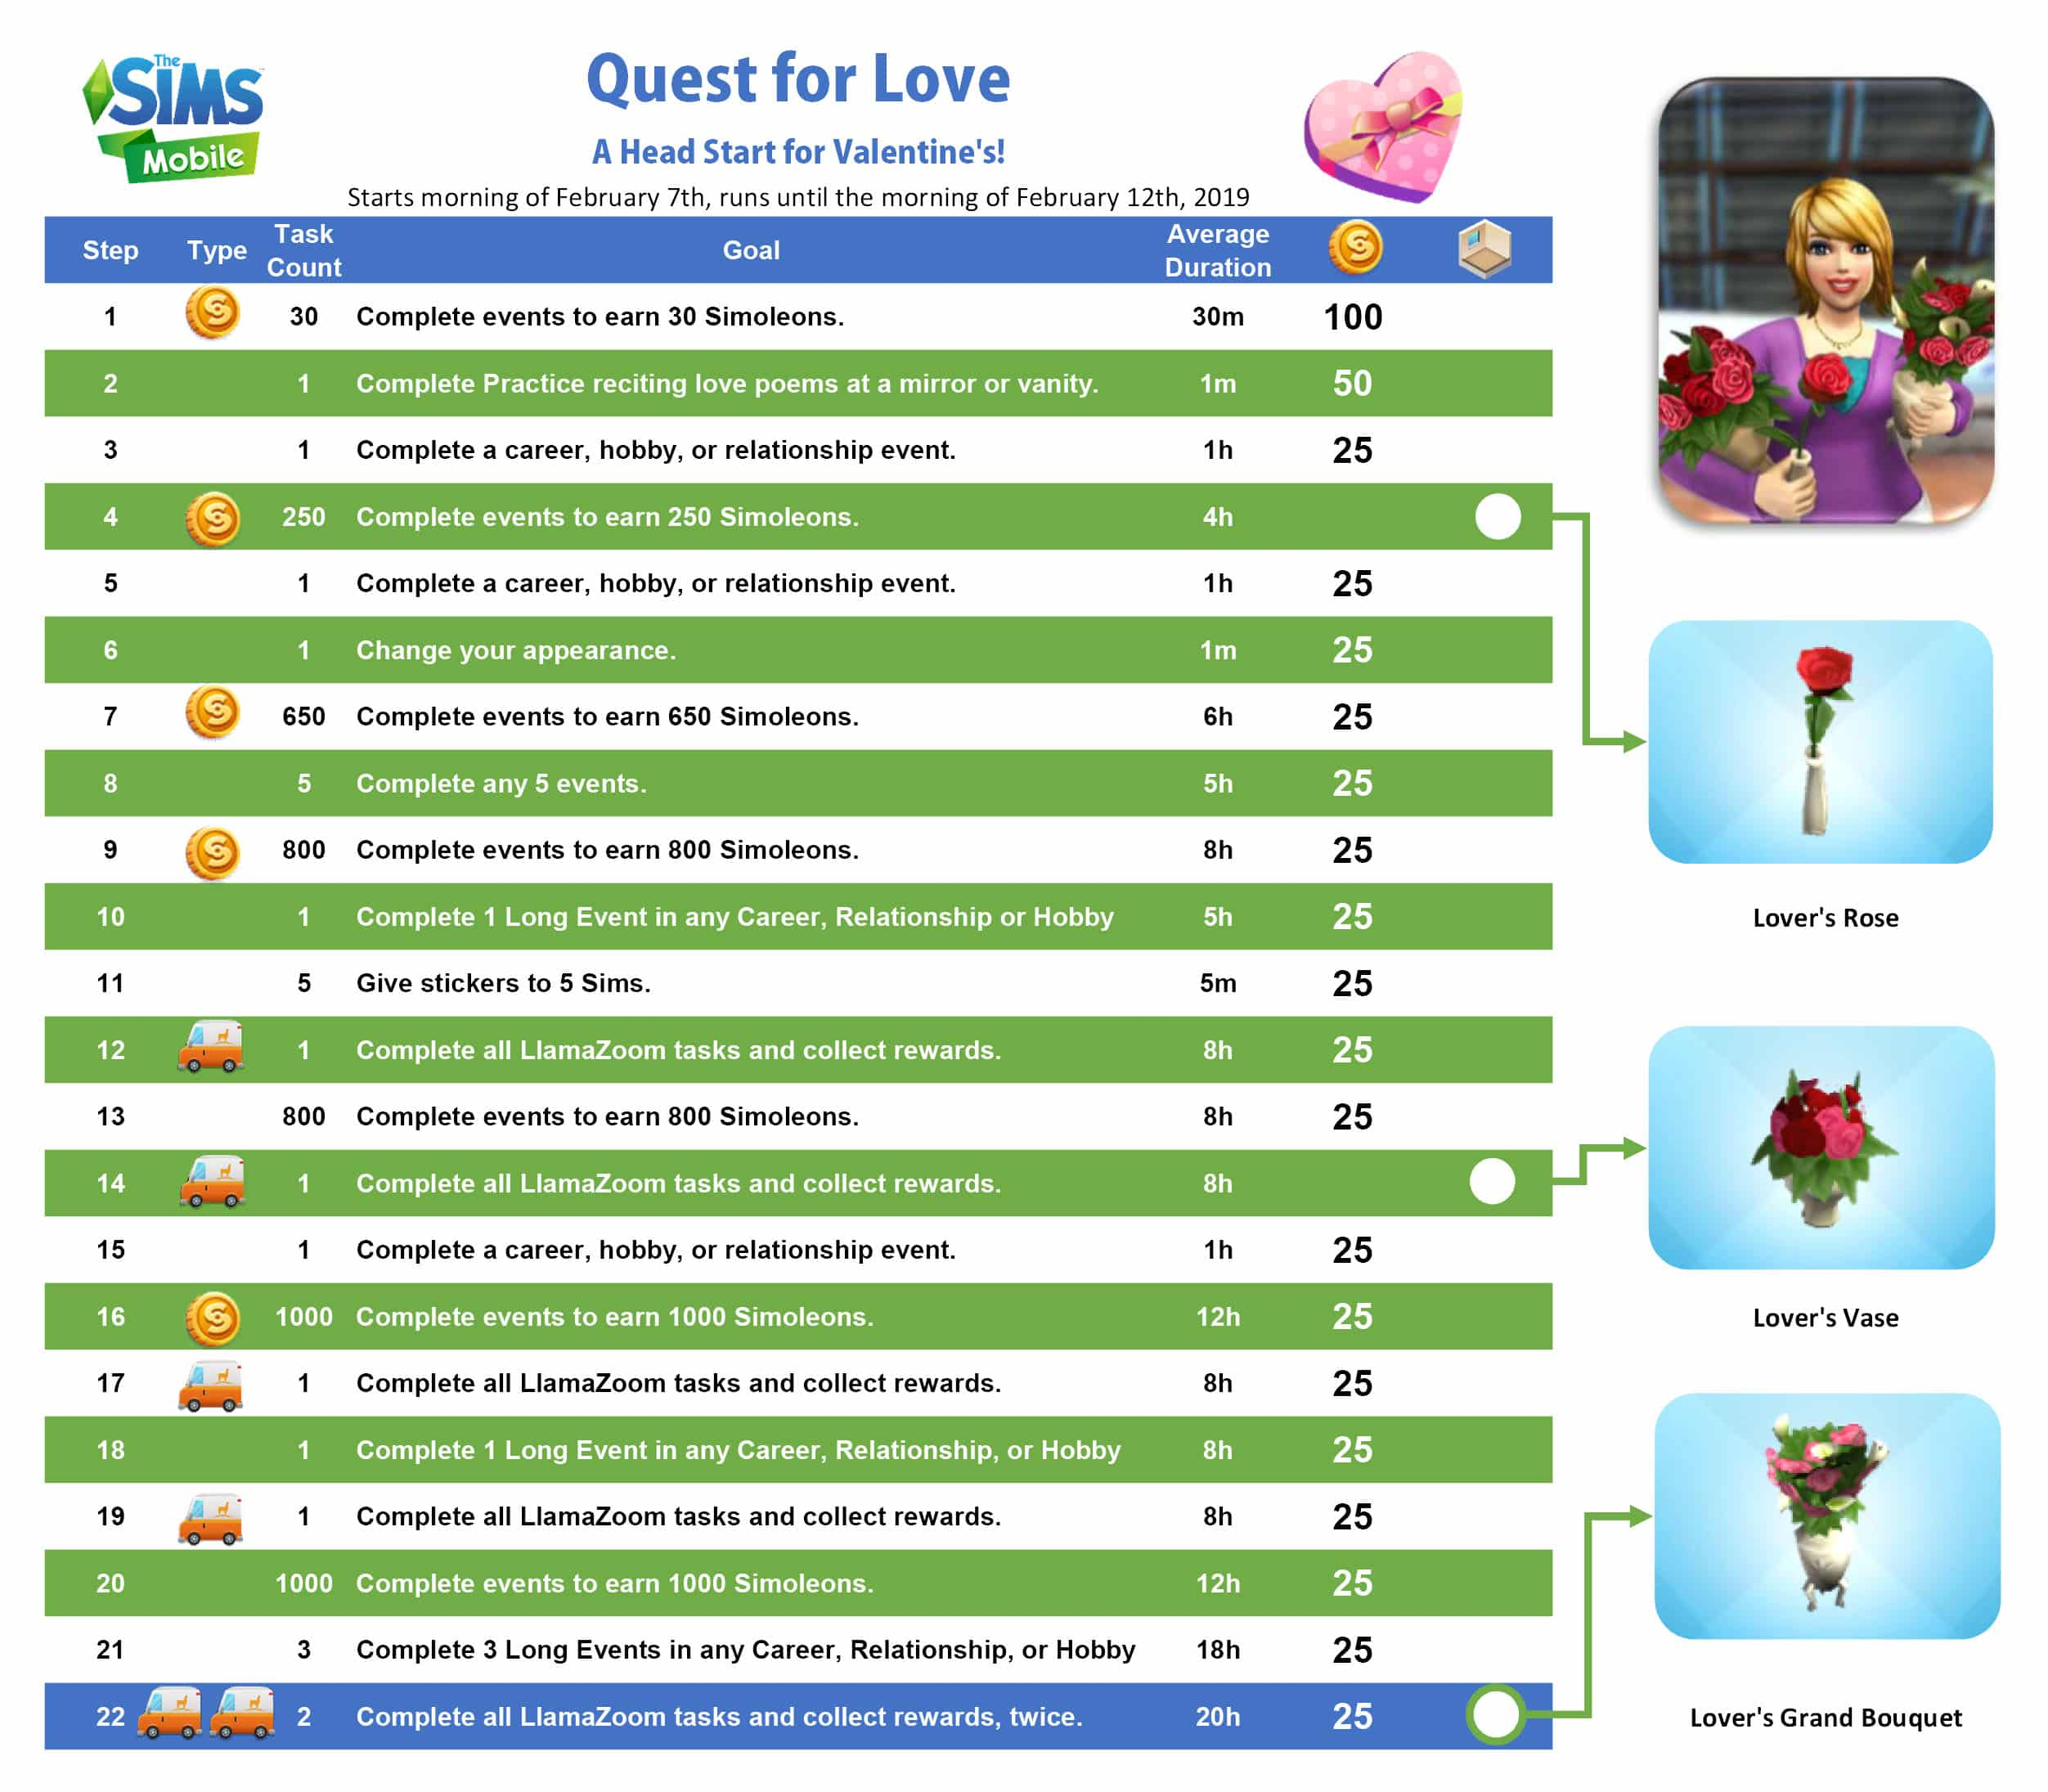 The Sims Mobile: Quest For Love, Valentine's Event Head